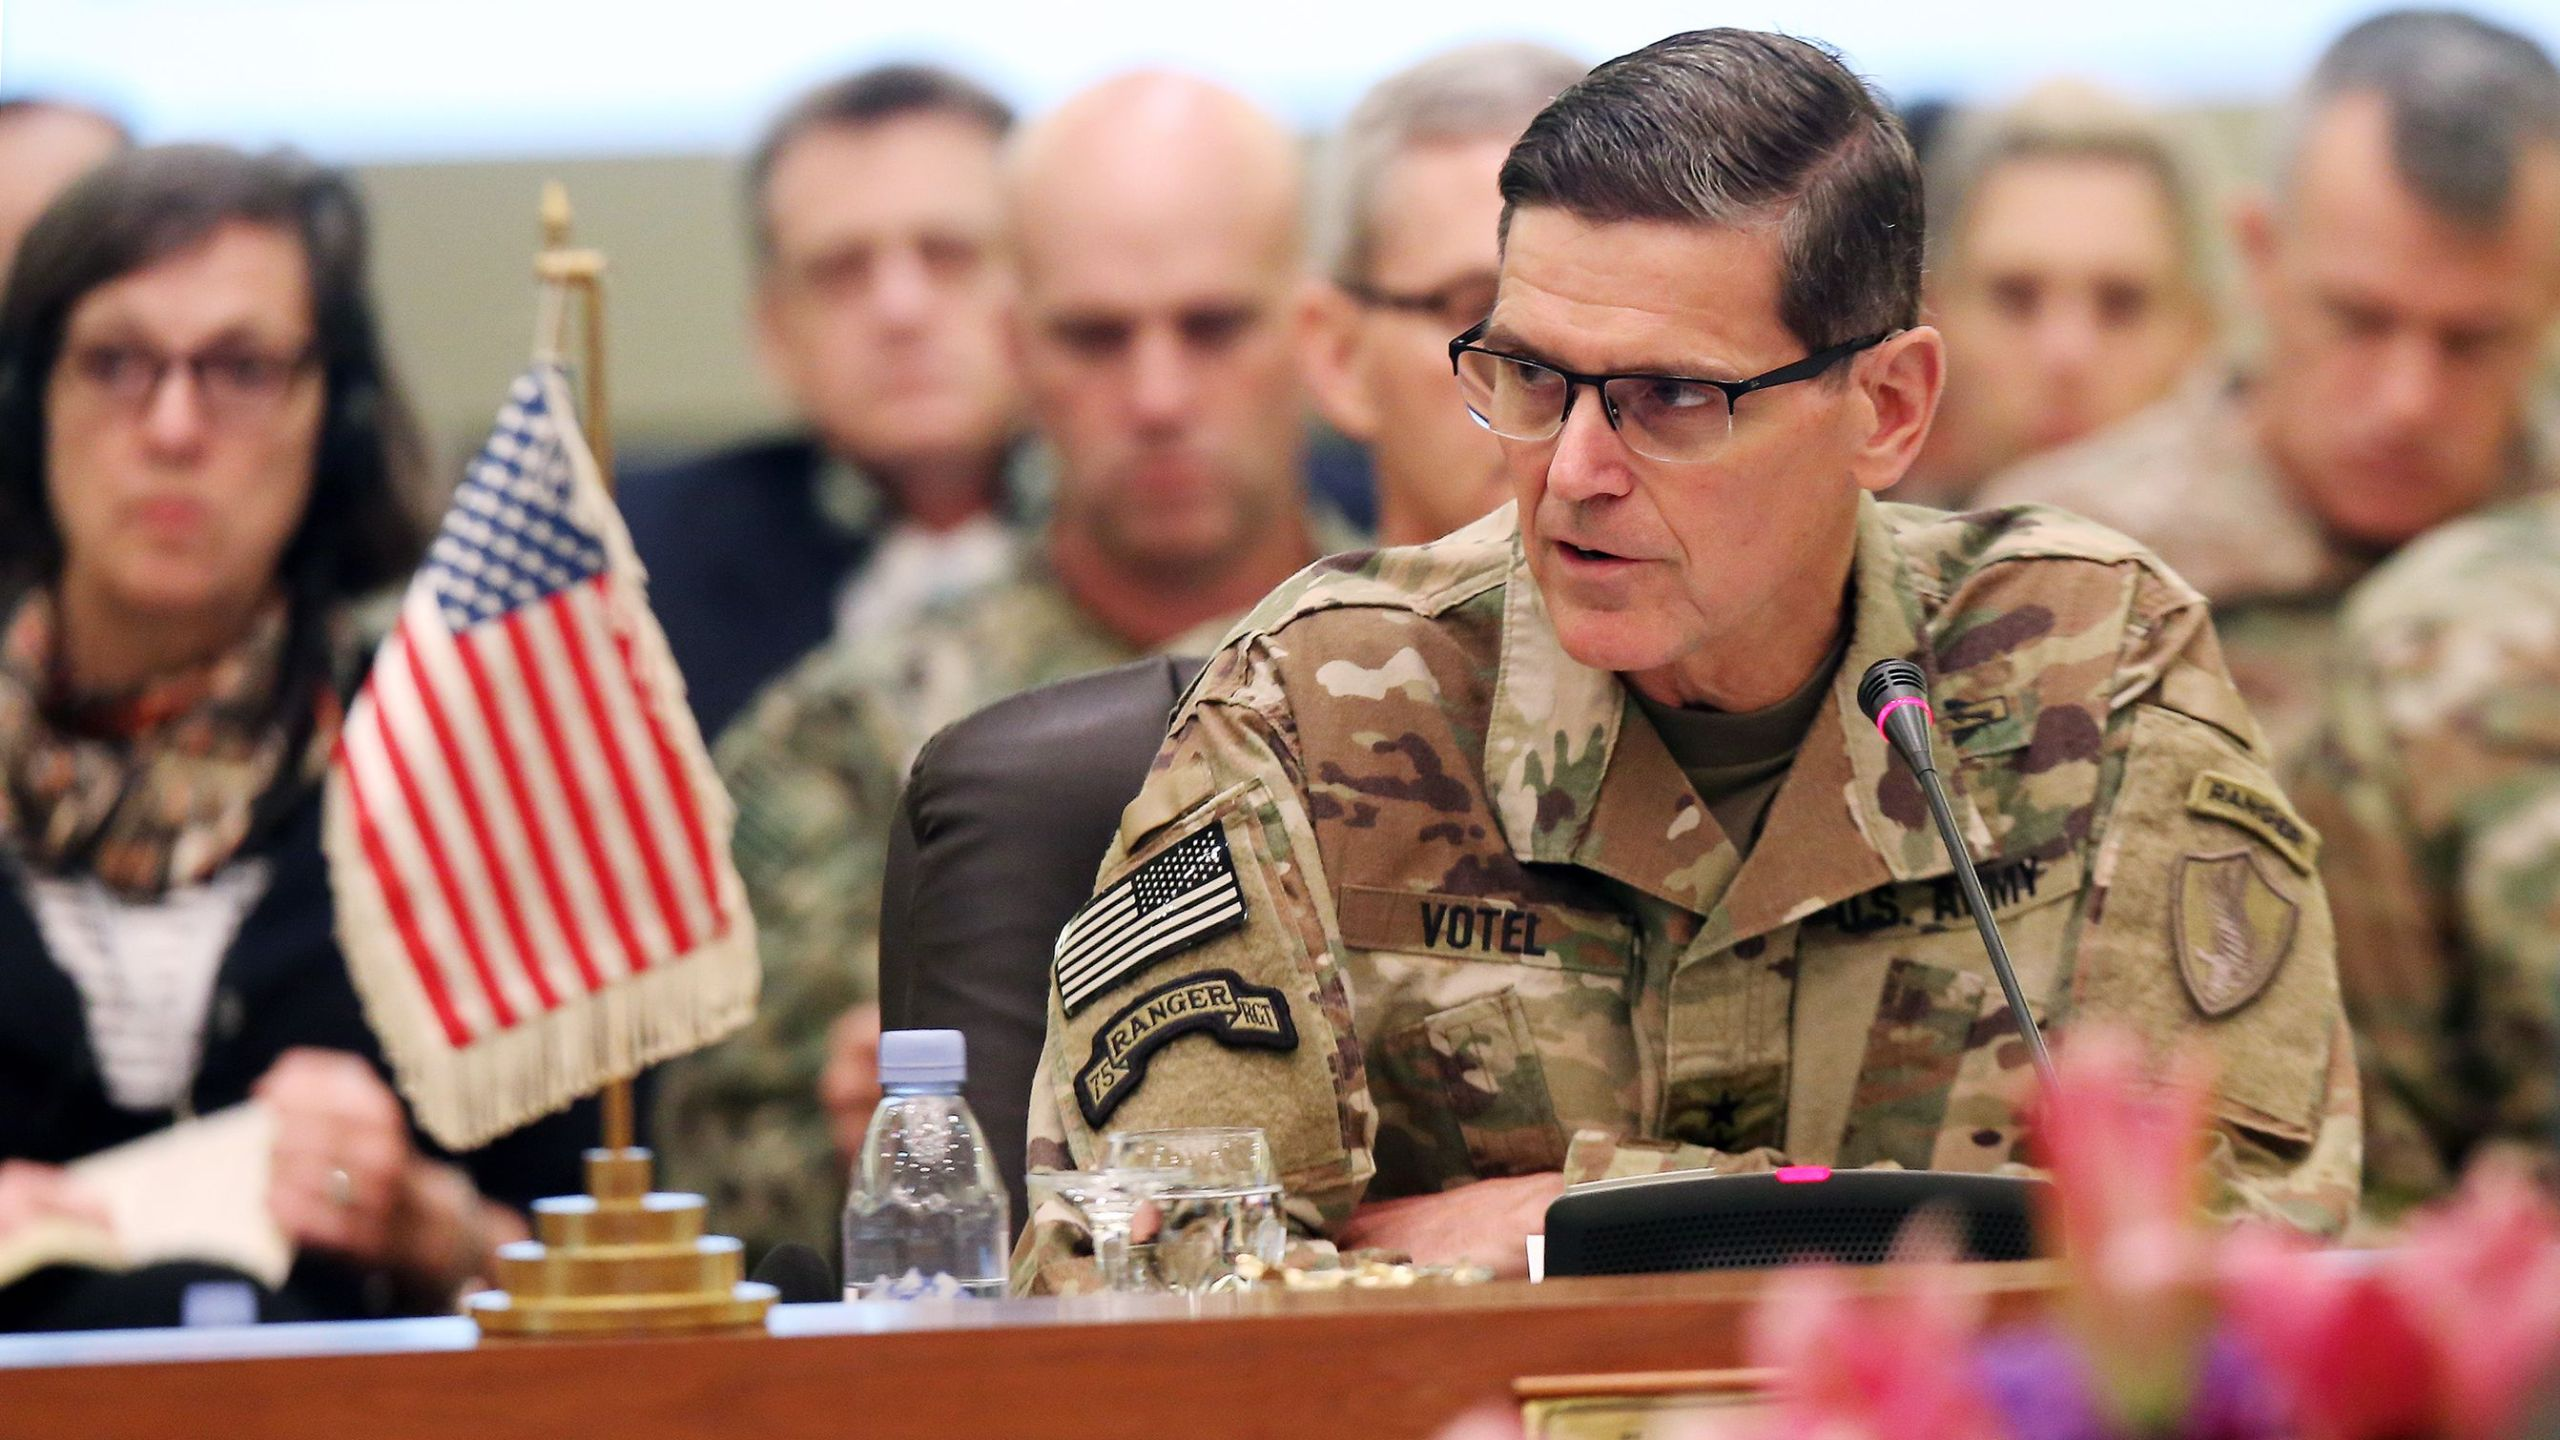 Joseph Leonard Votel speaks during a meeting with the Gulf cooperation council's armed forces chiefs of staff in Kuwait City on Sep. 12, 2018.(Credit: Yasser Al-Zayyat/AFP/Getty Images)